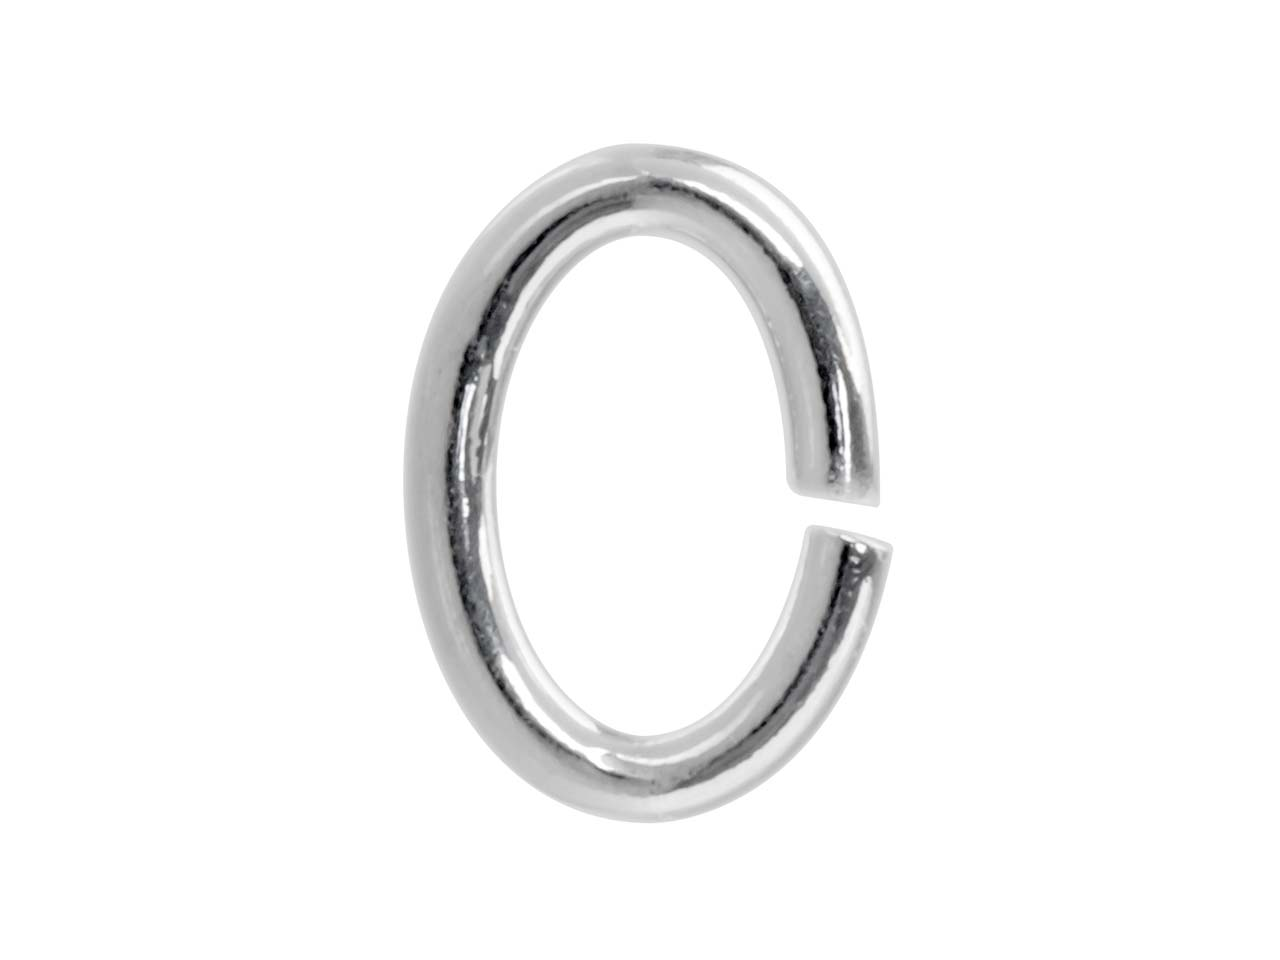 Sterling Silver Jump Ring Oval 5mm, Pack of 20